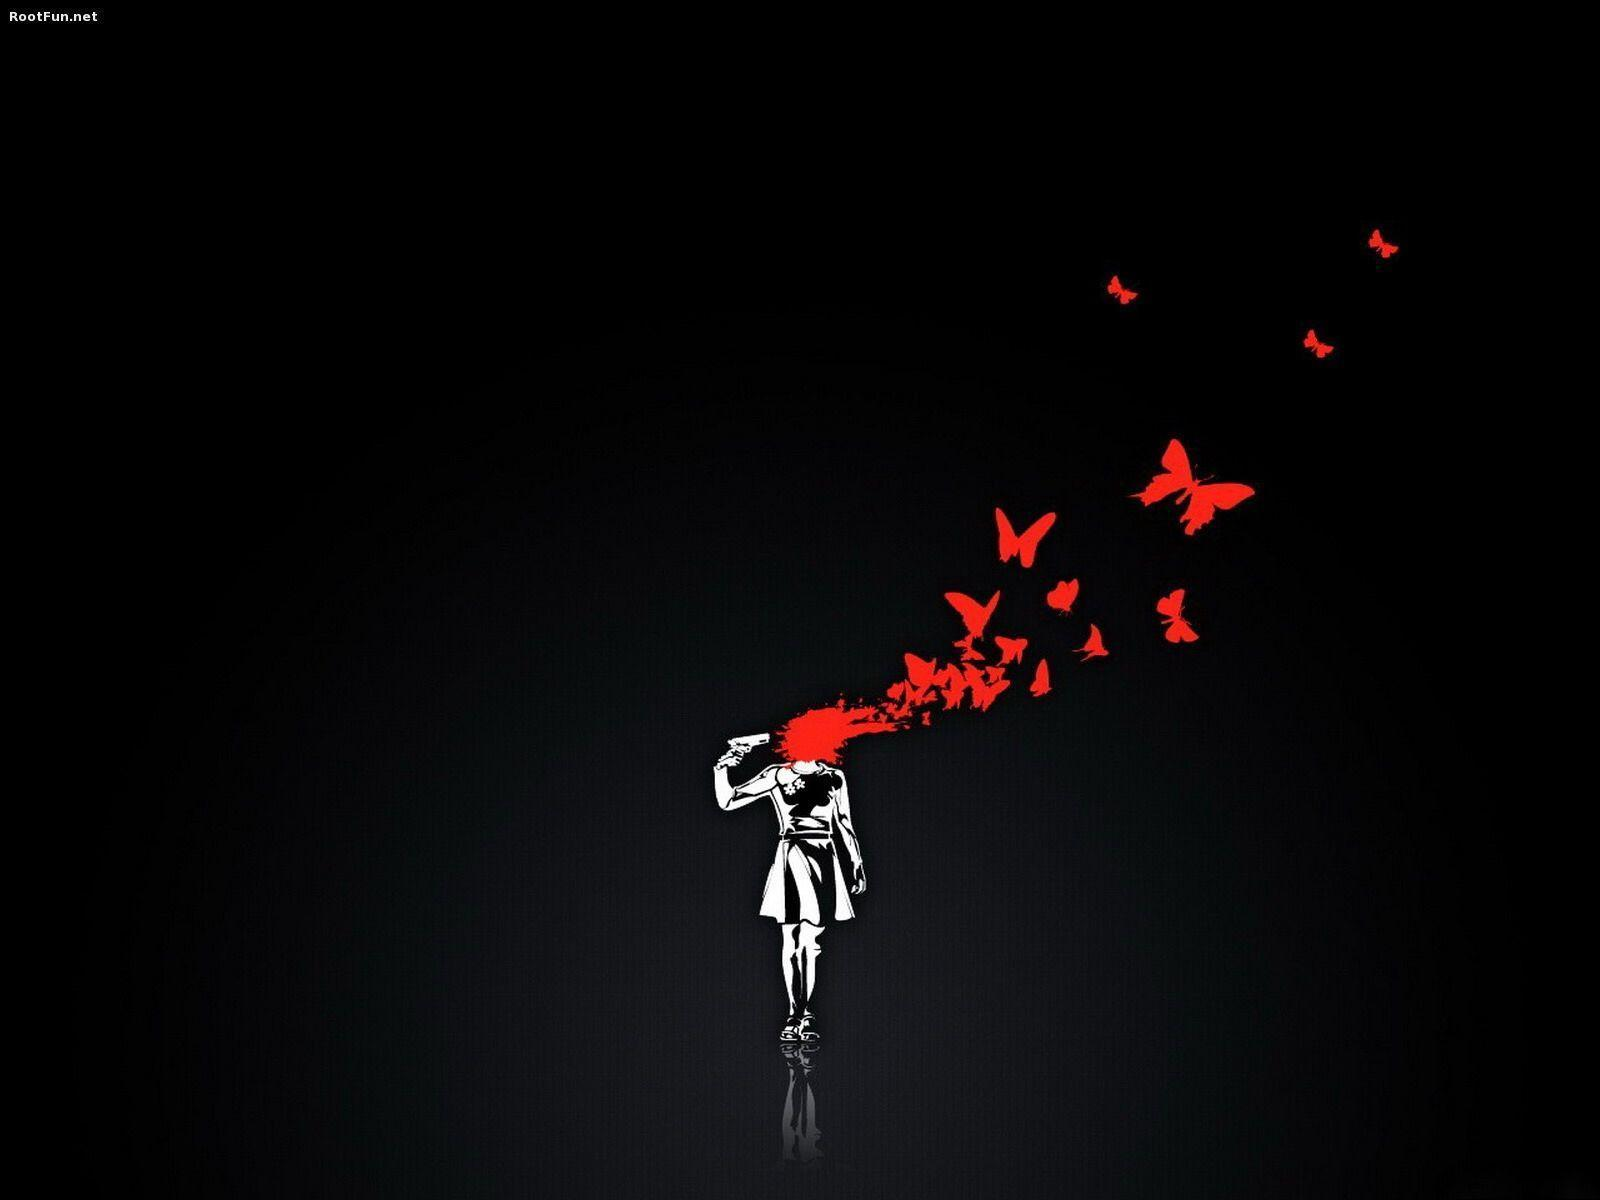 Broken Love Wallpaper For Mobile : Heart Broken Wallpapers - Wallpaper cave